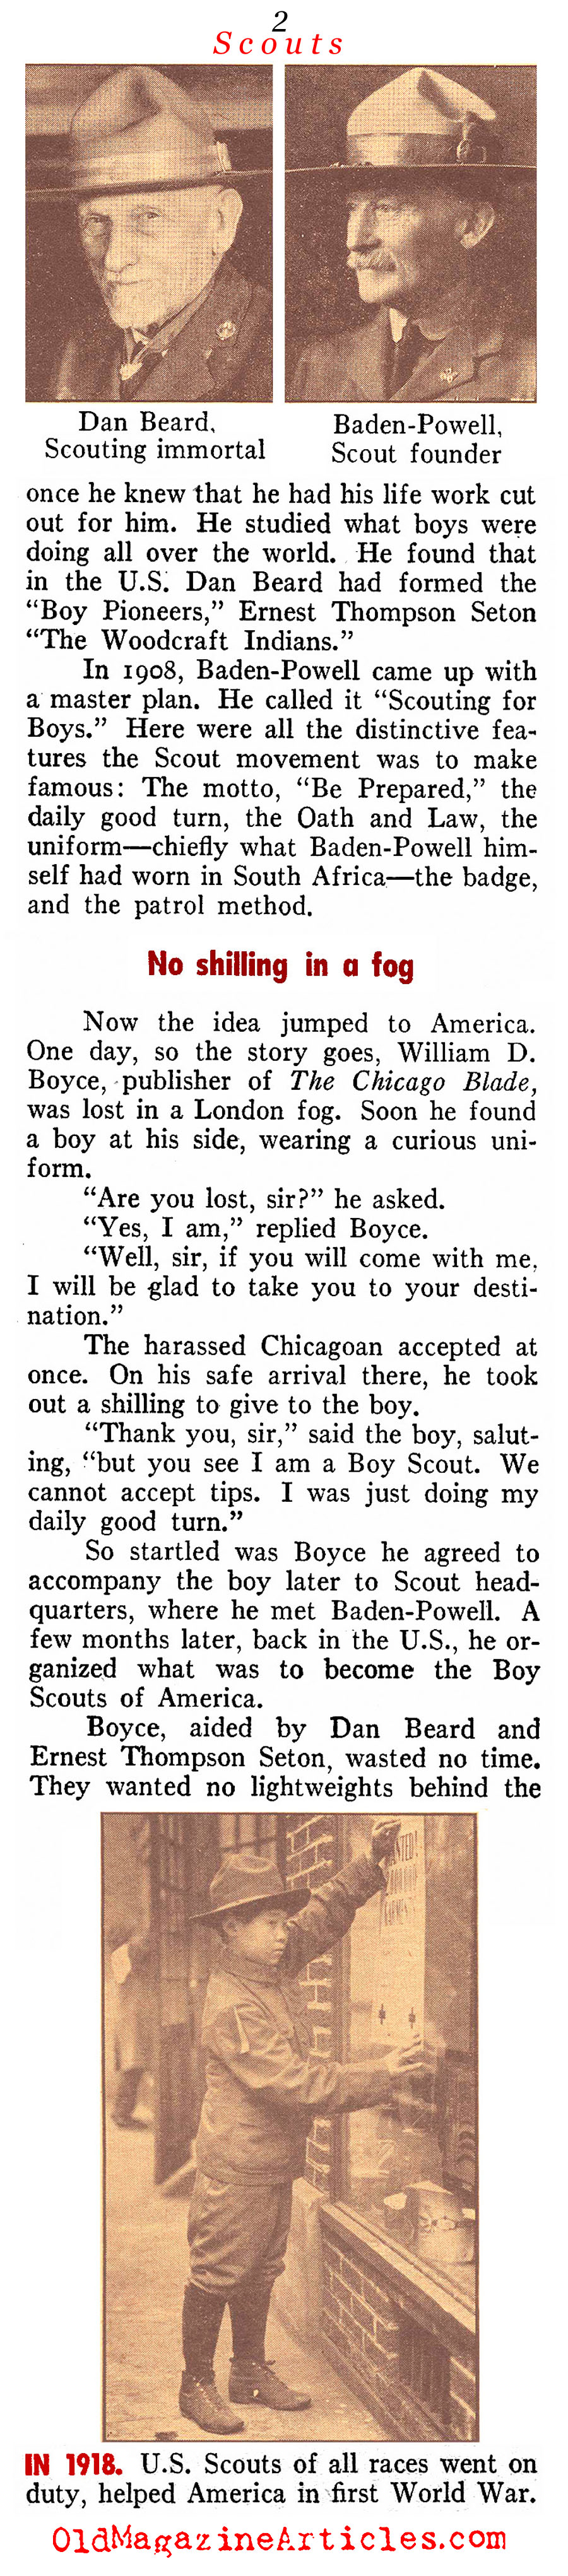 The Boy Scouts of America (Pathfinder Magazine, 1947)